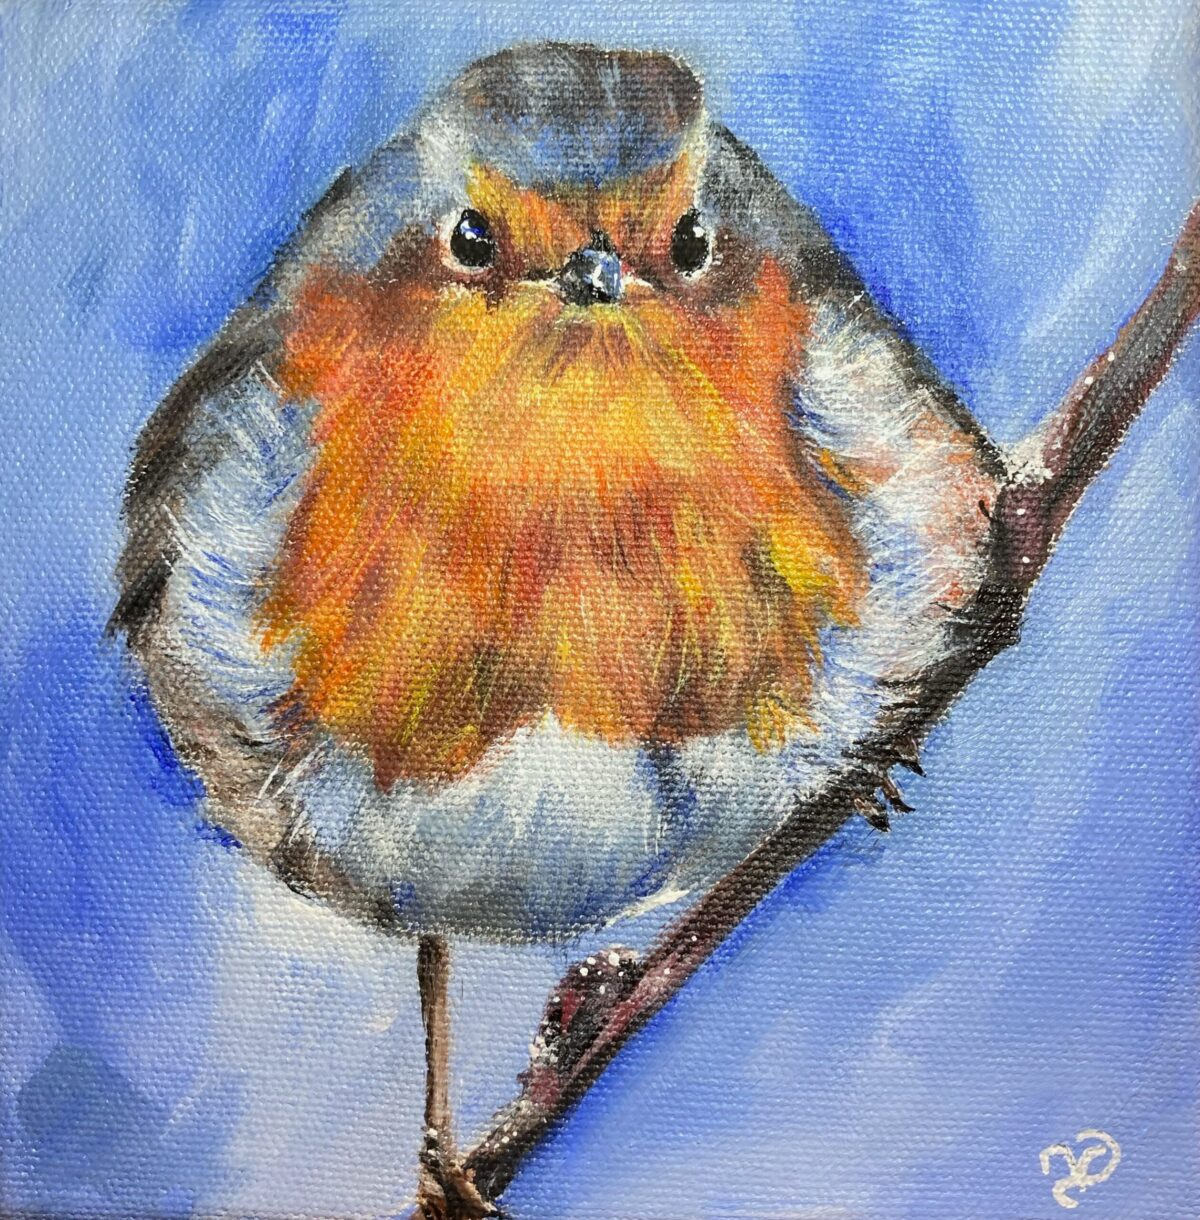 Robin. Acrylic painting by North Yorkshire artist Vicki Davidson